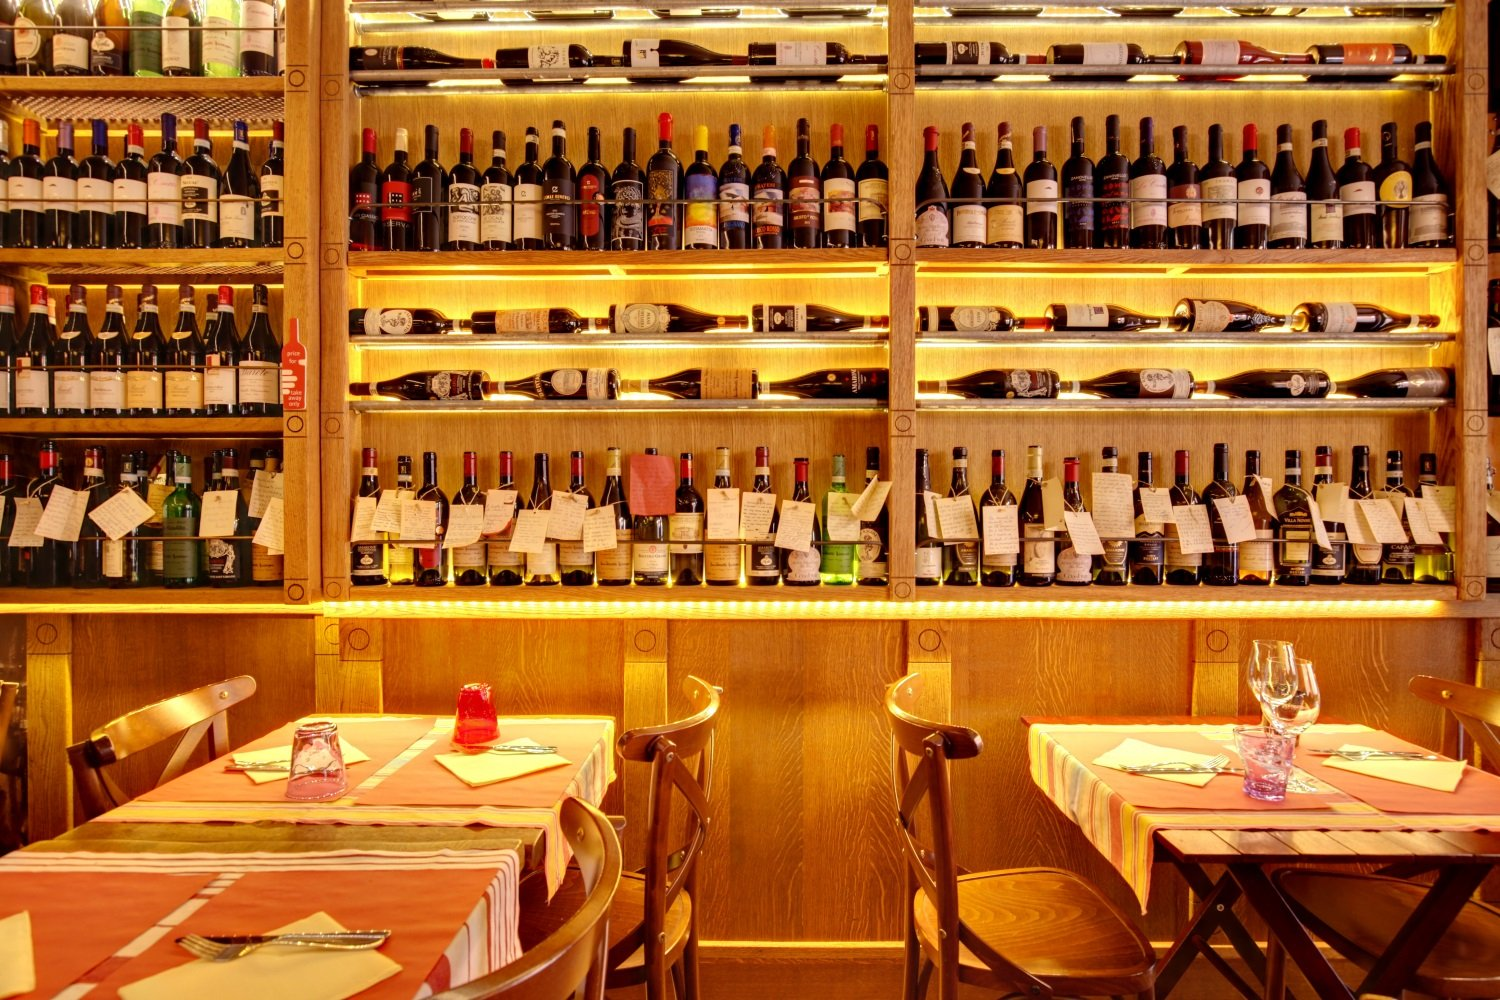 Wines at All'Amarone